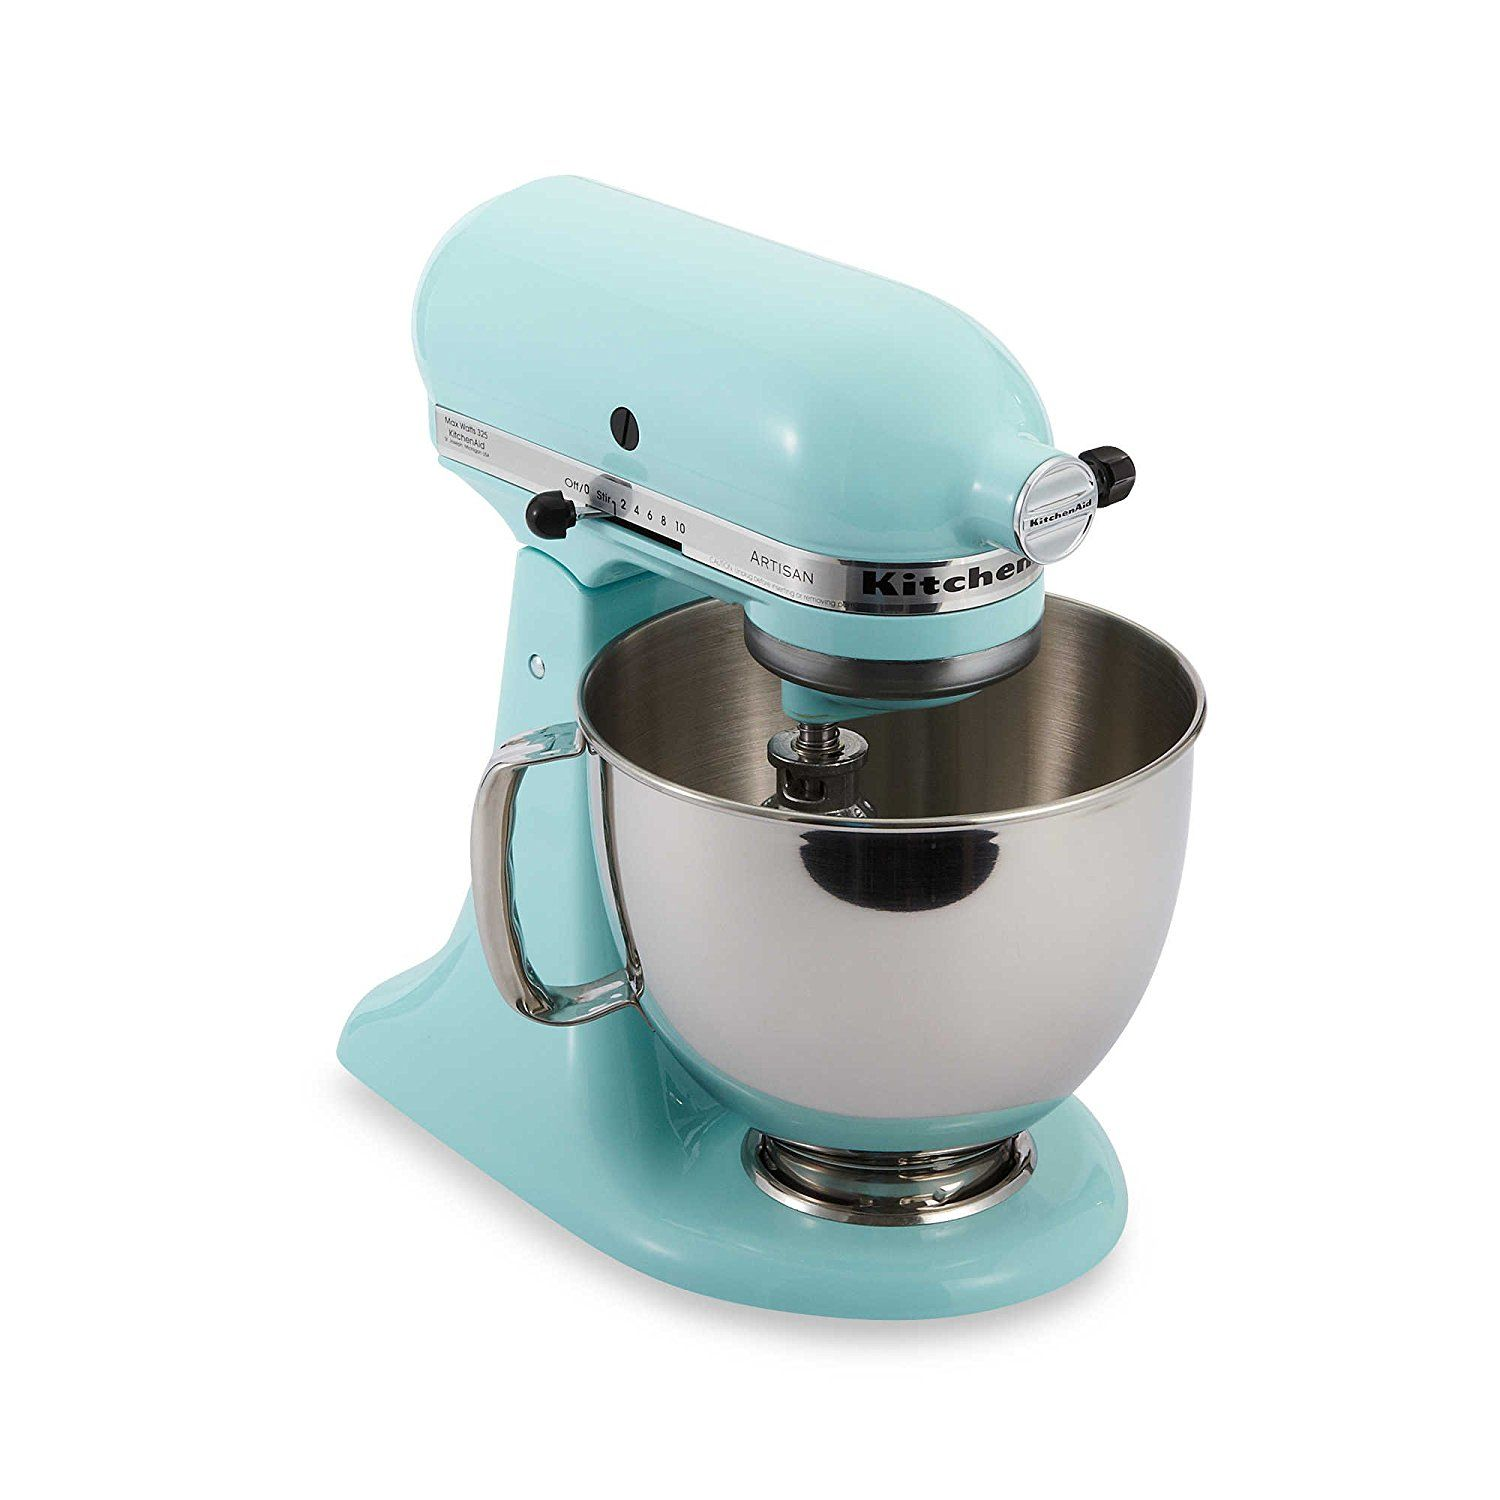 Cool ice blue artisan mixer from the artisan series of